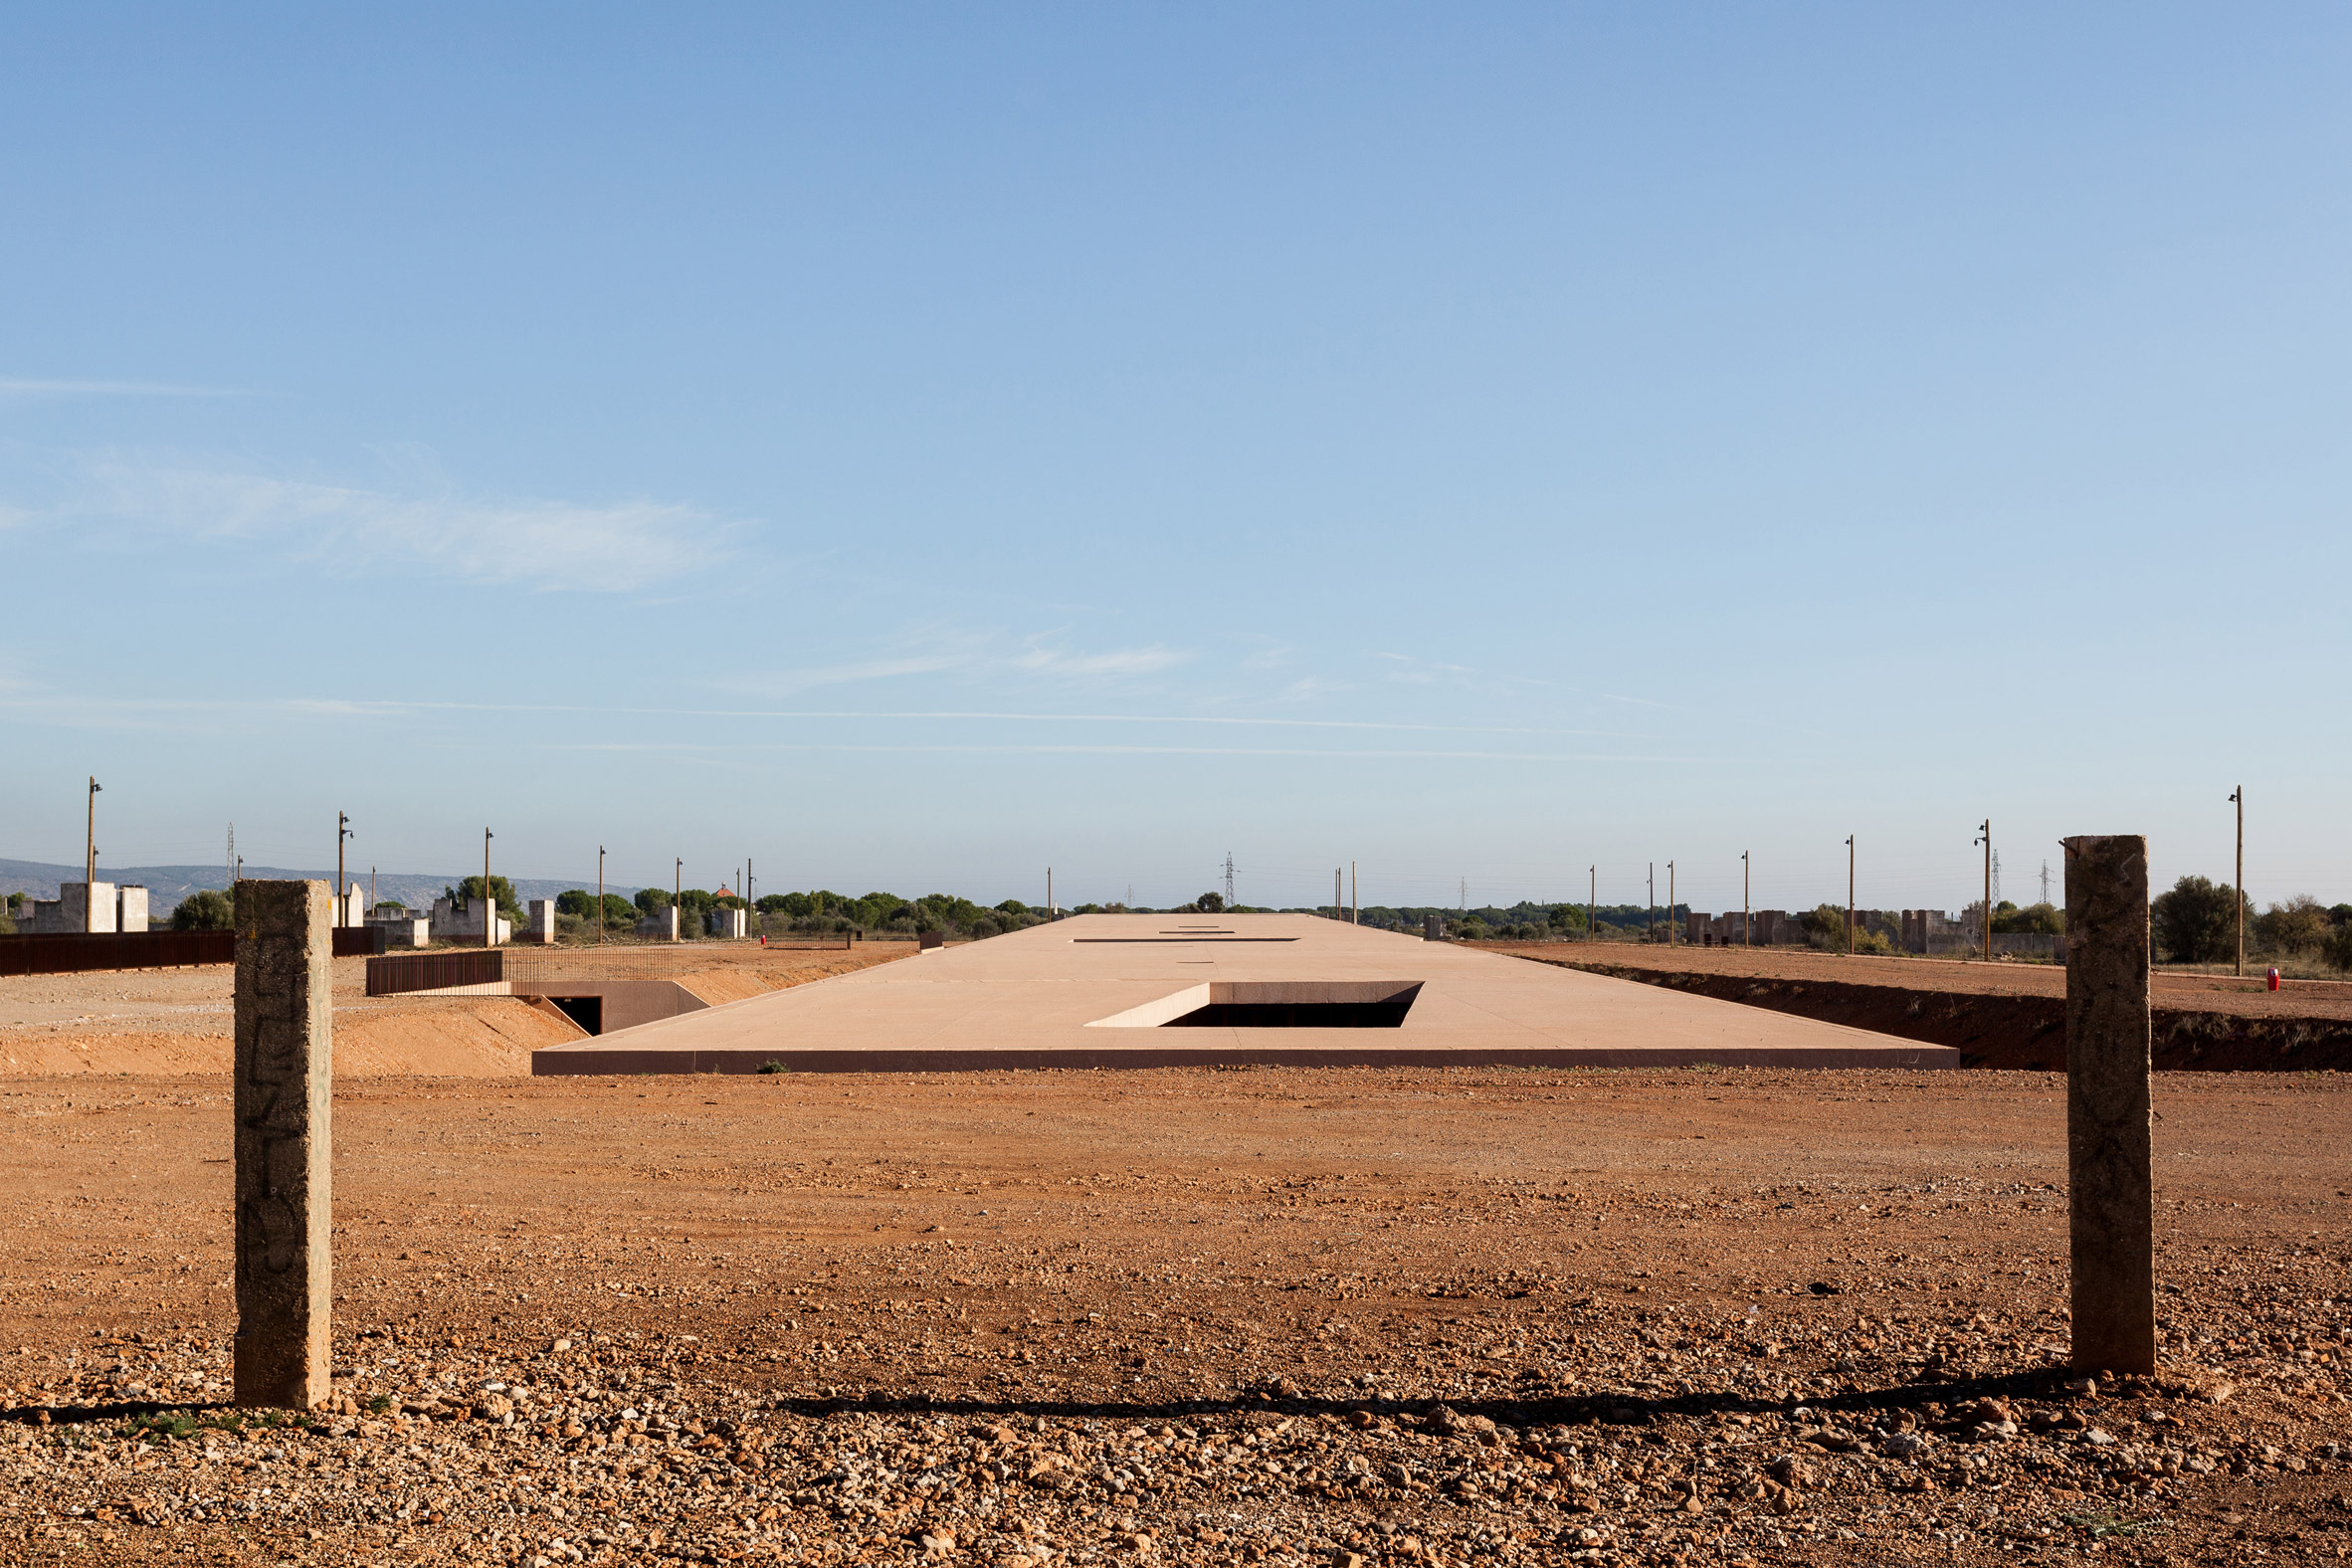 Rudy Ricciotti sinks Rivesaltes Memorial Museum in furrow at former French military camp